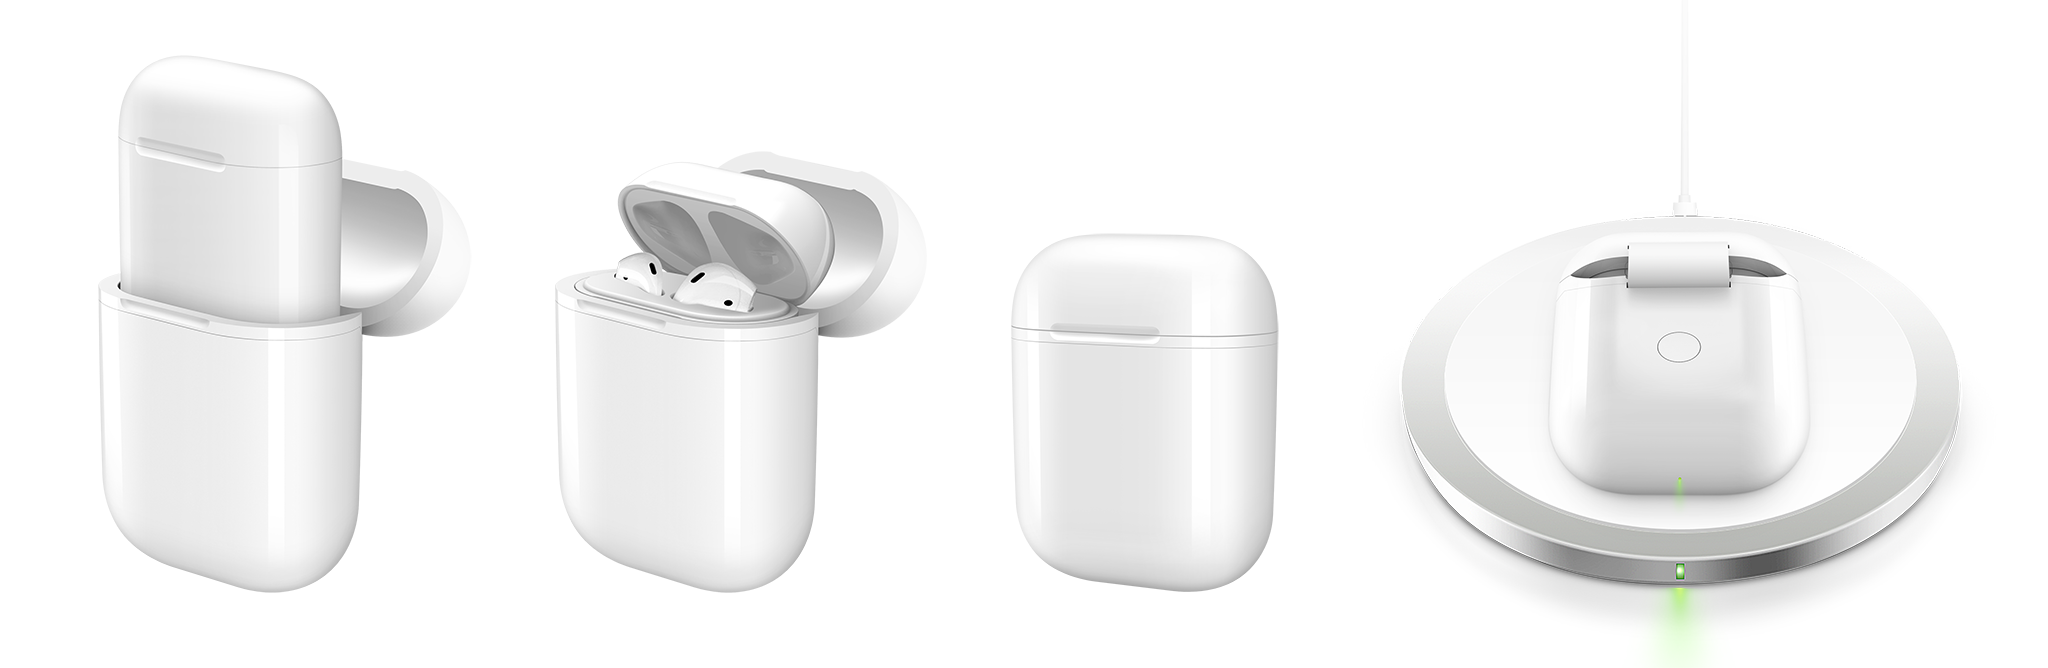 Overview of HyperJuice Wireless Charging Case for Apple AirPods